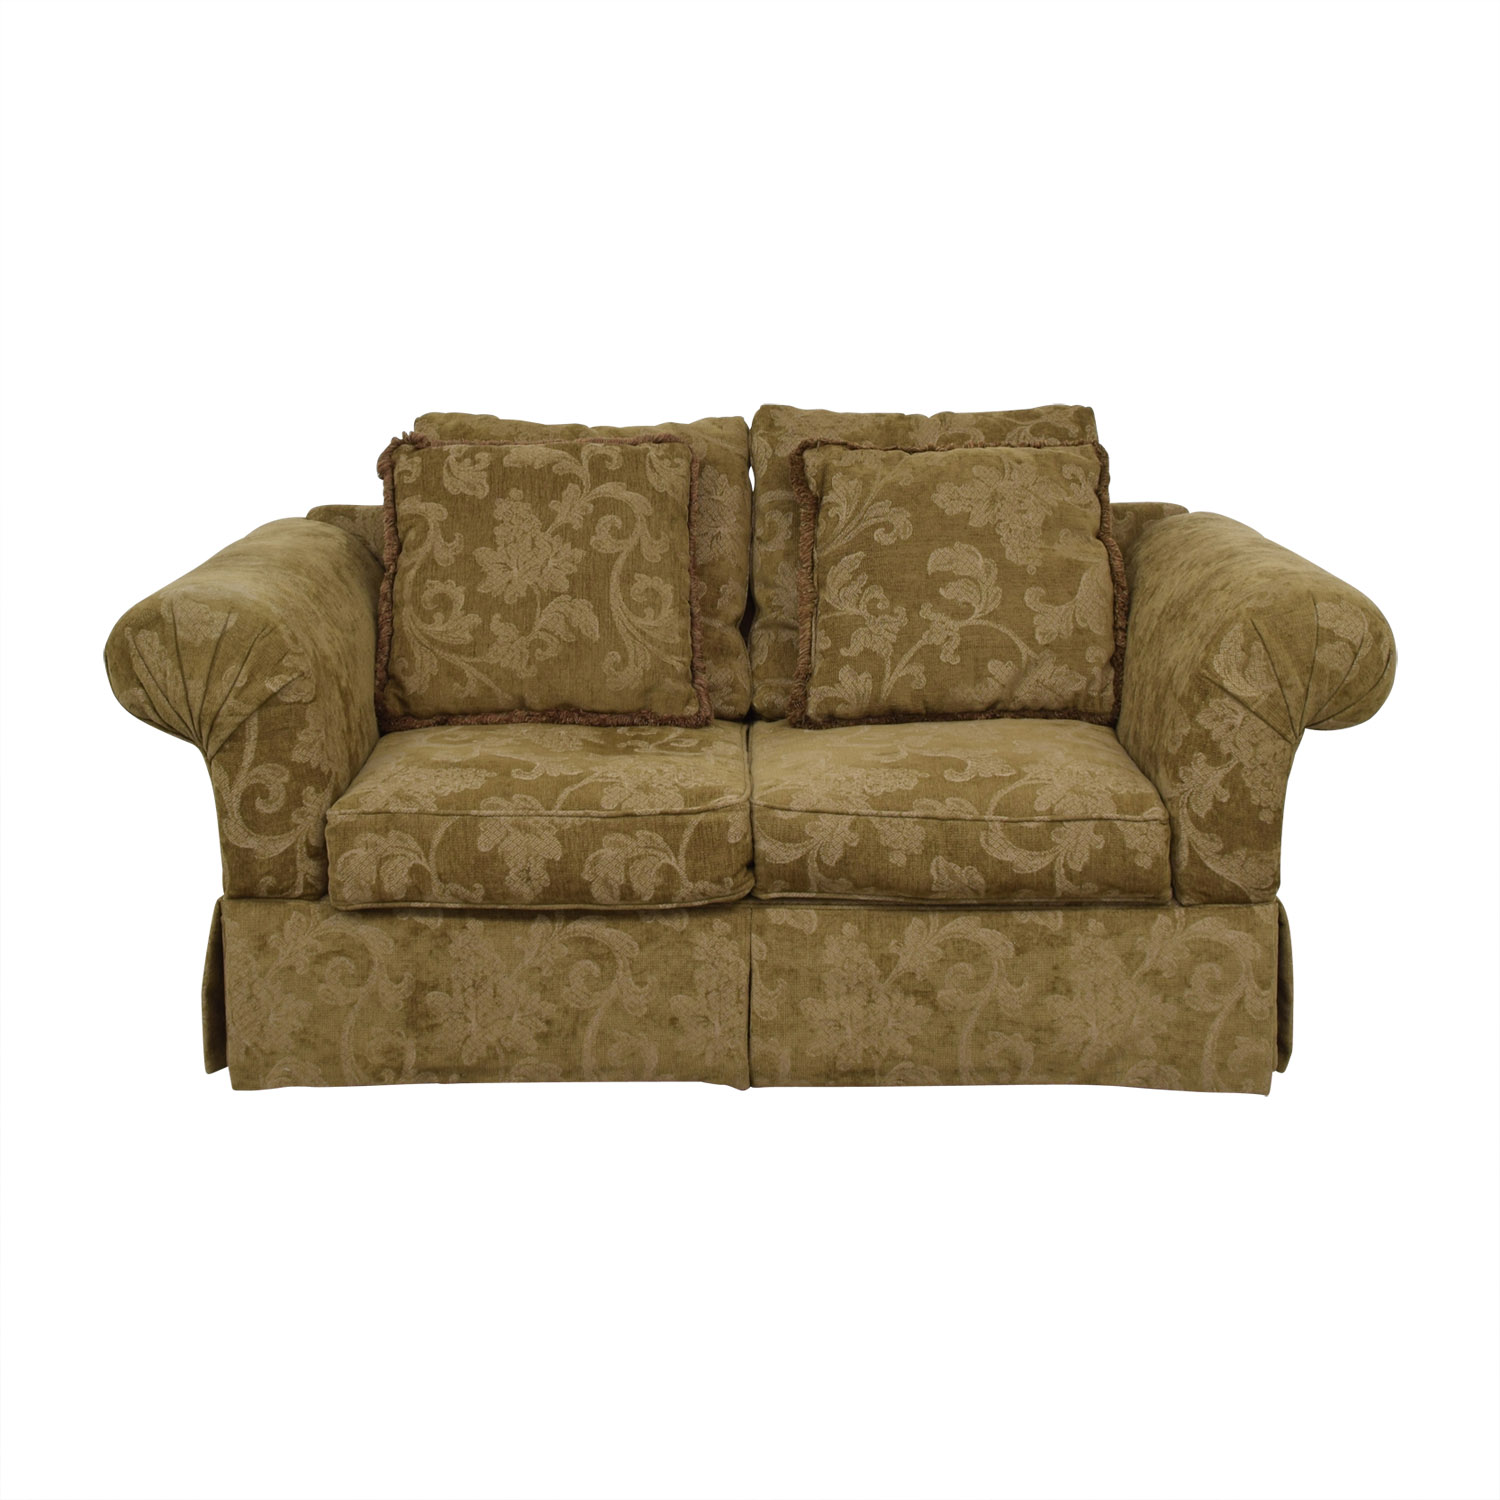 shop Alan White Brown and Tan Two-Cushion Couch Alan White Sofas